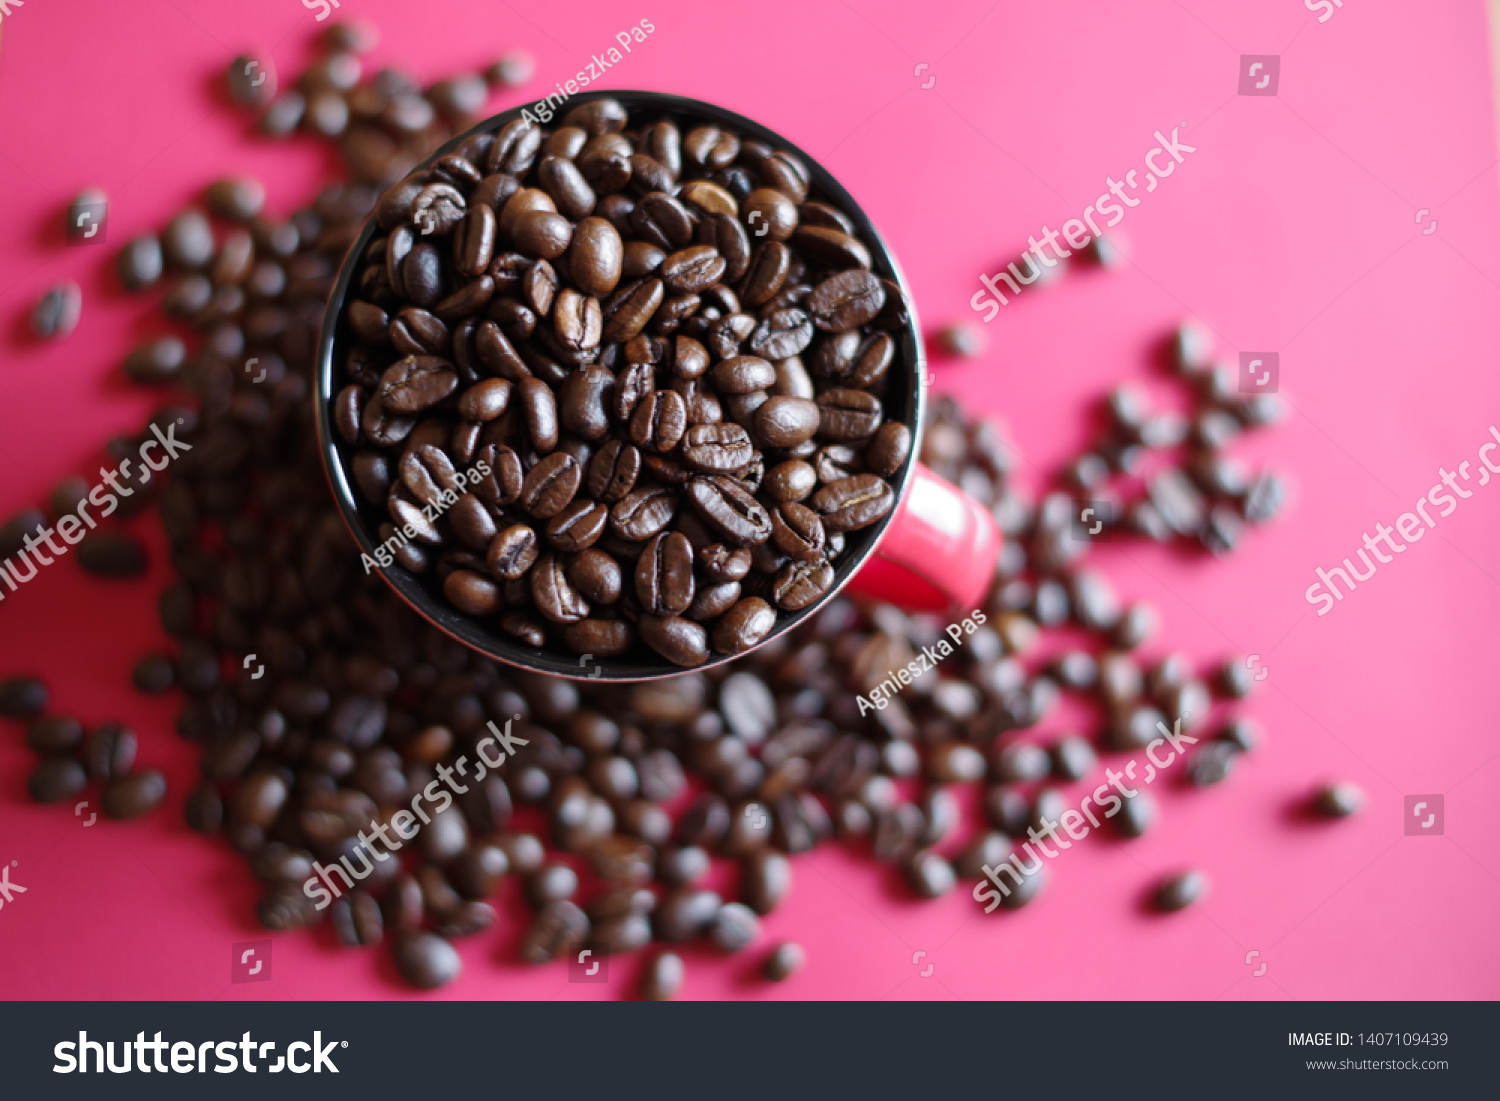 stock-photo-coffee-beans-in-a-cup-140710